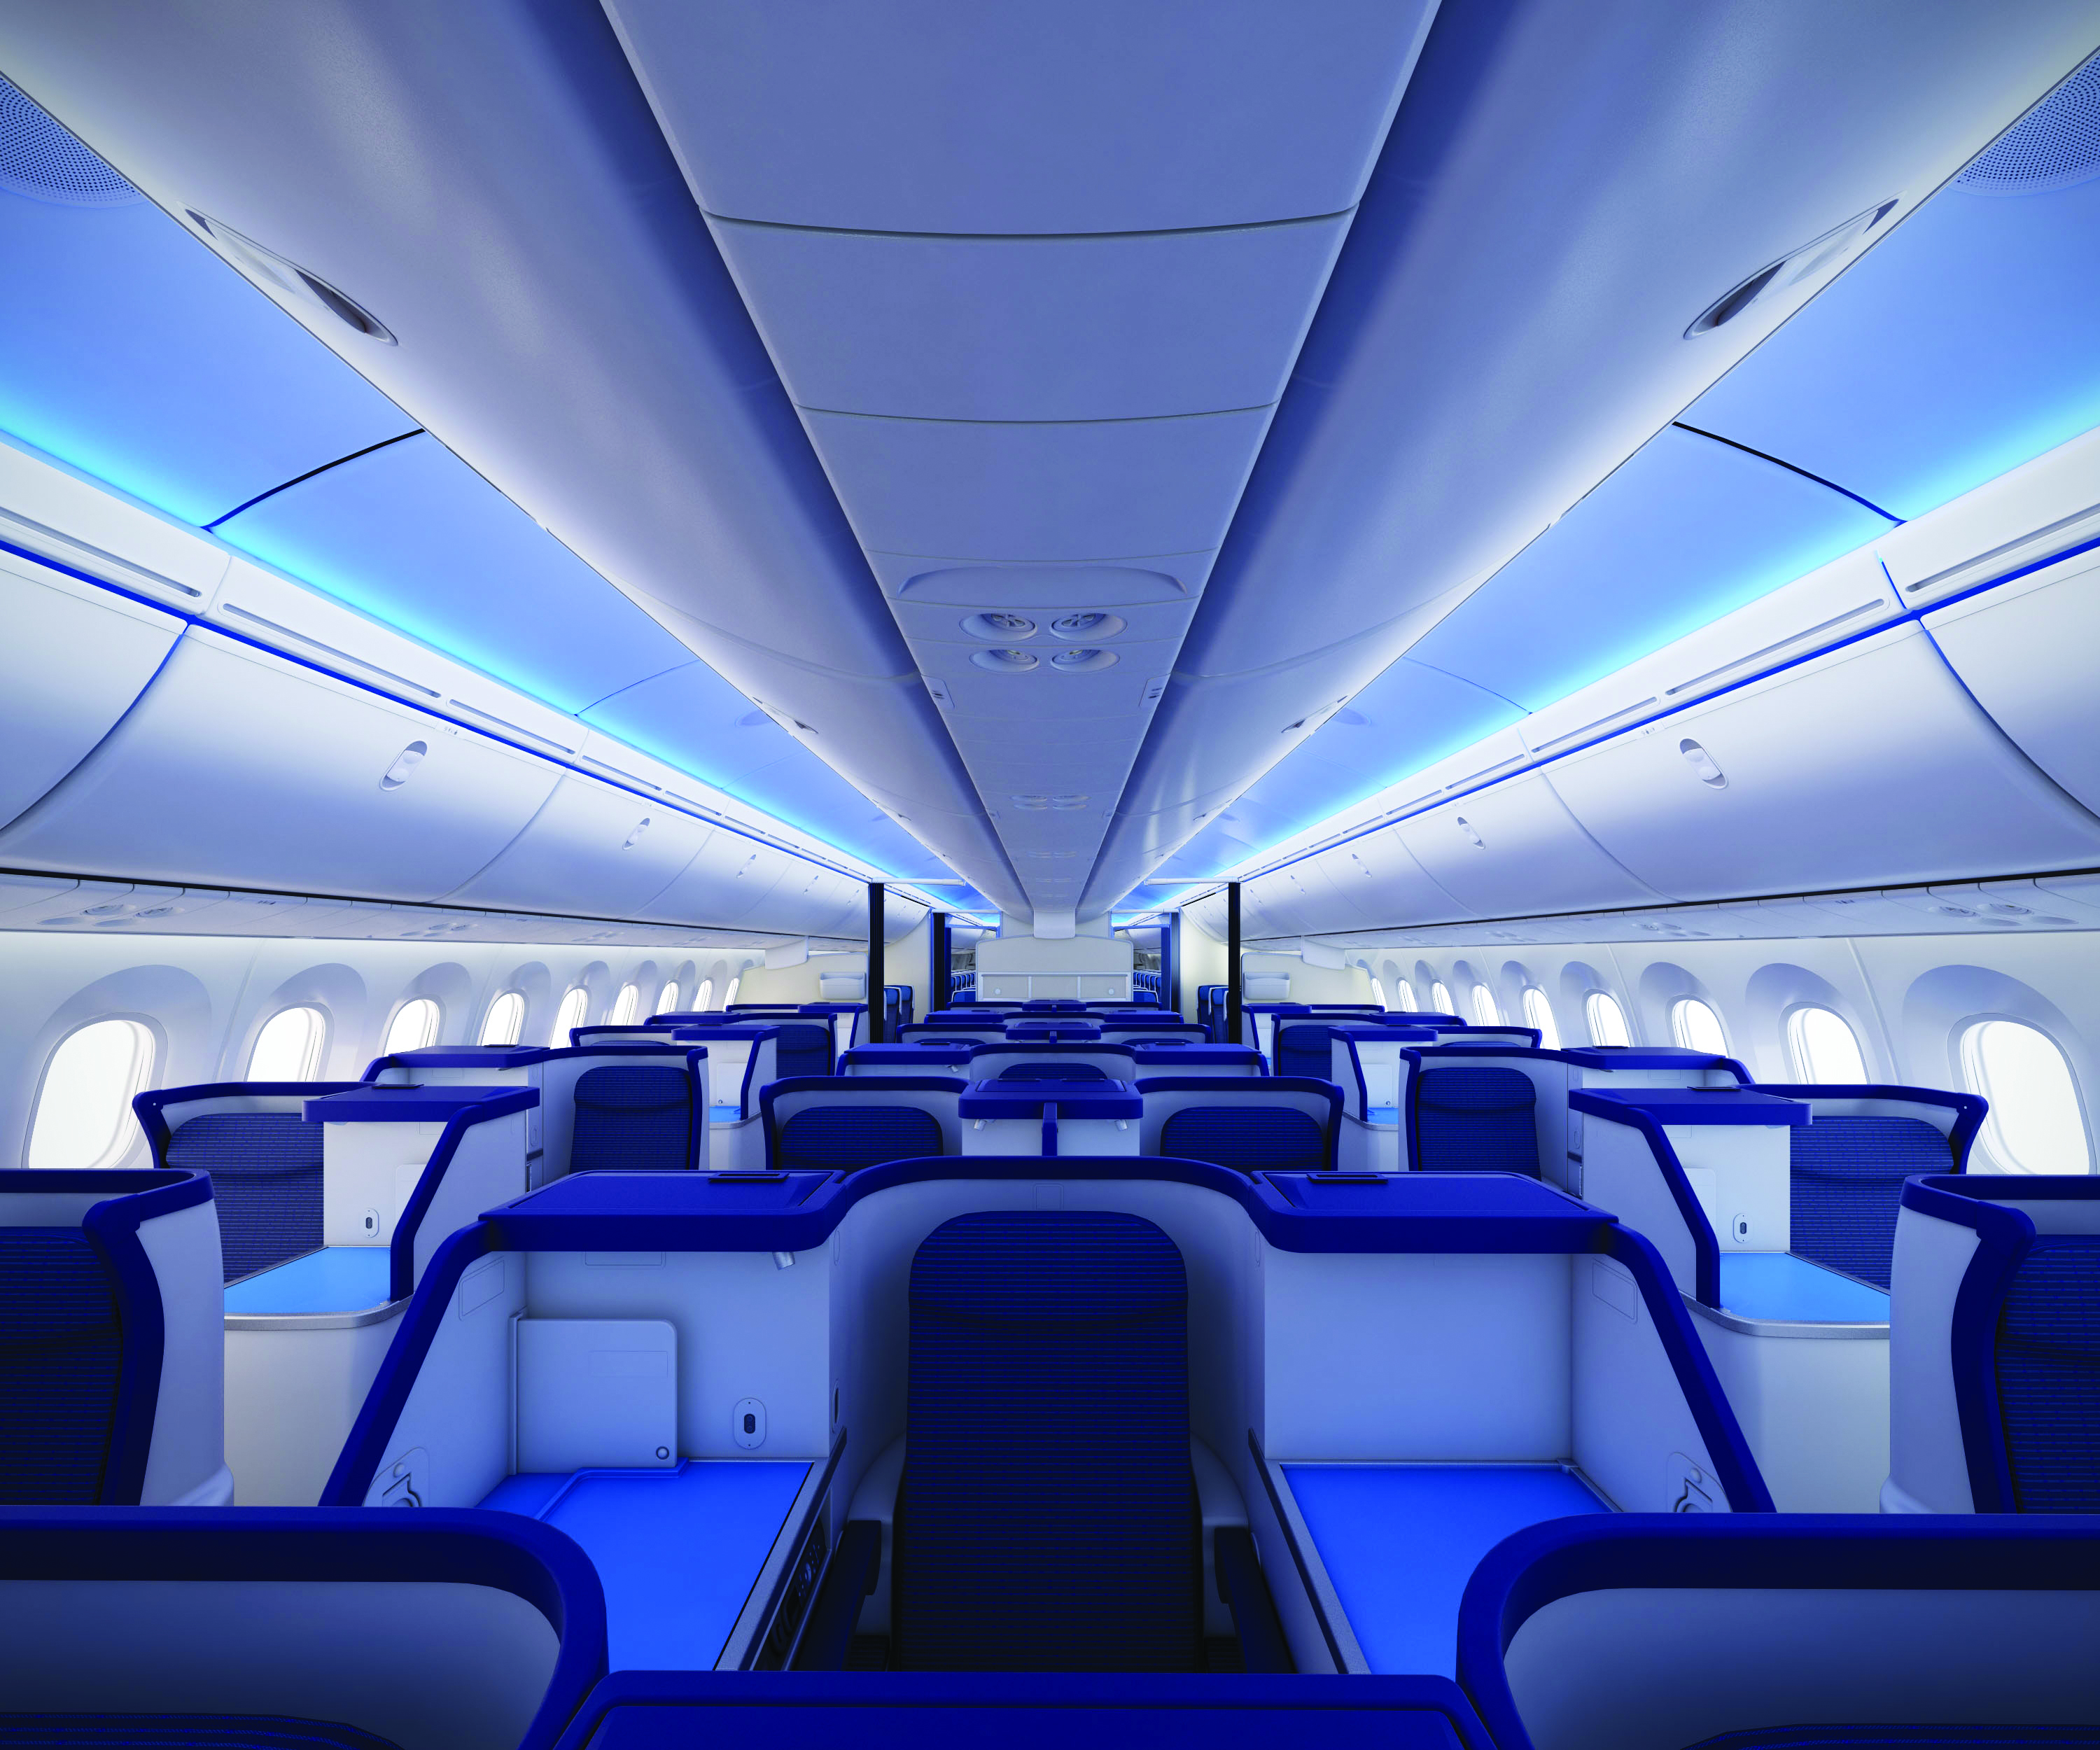 Premium cabin interiors on All Nippon Airways' long-haul Boeing 787